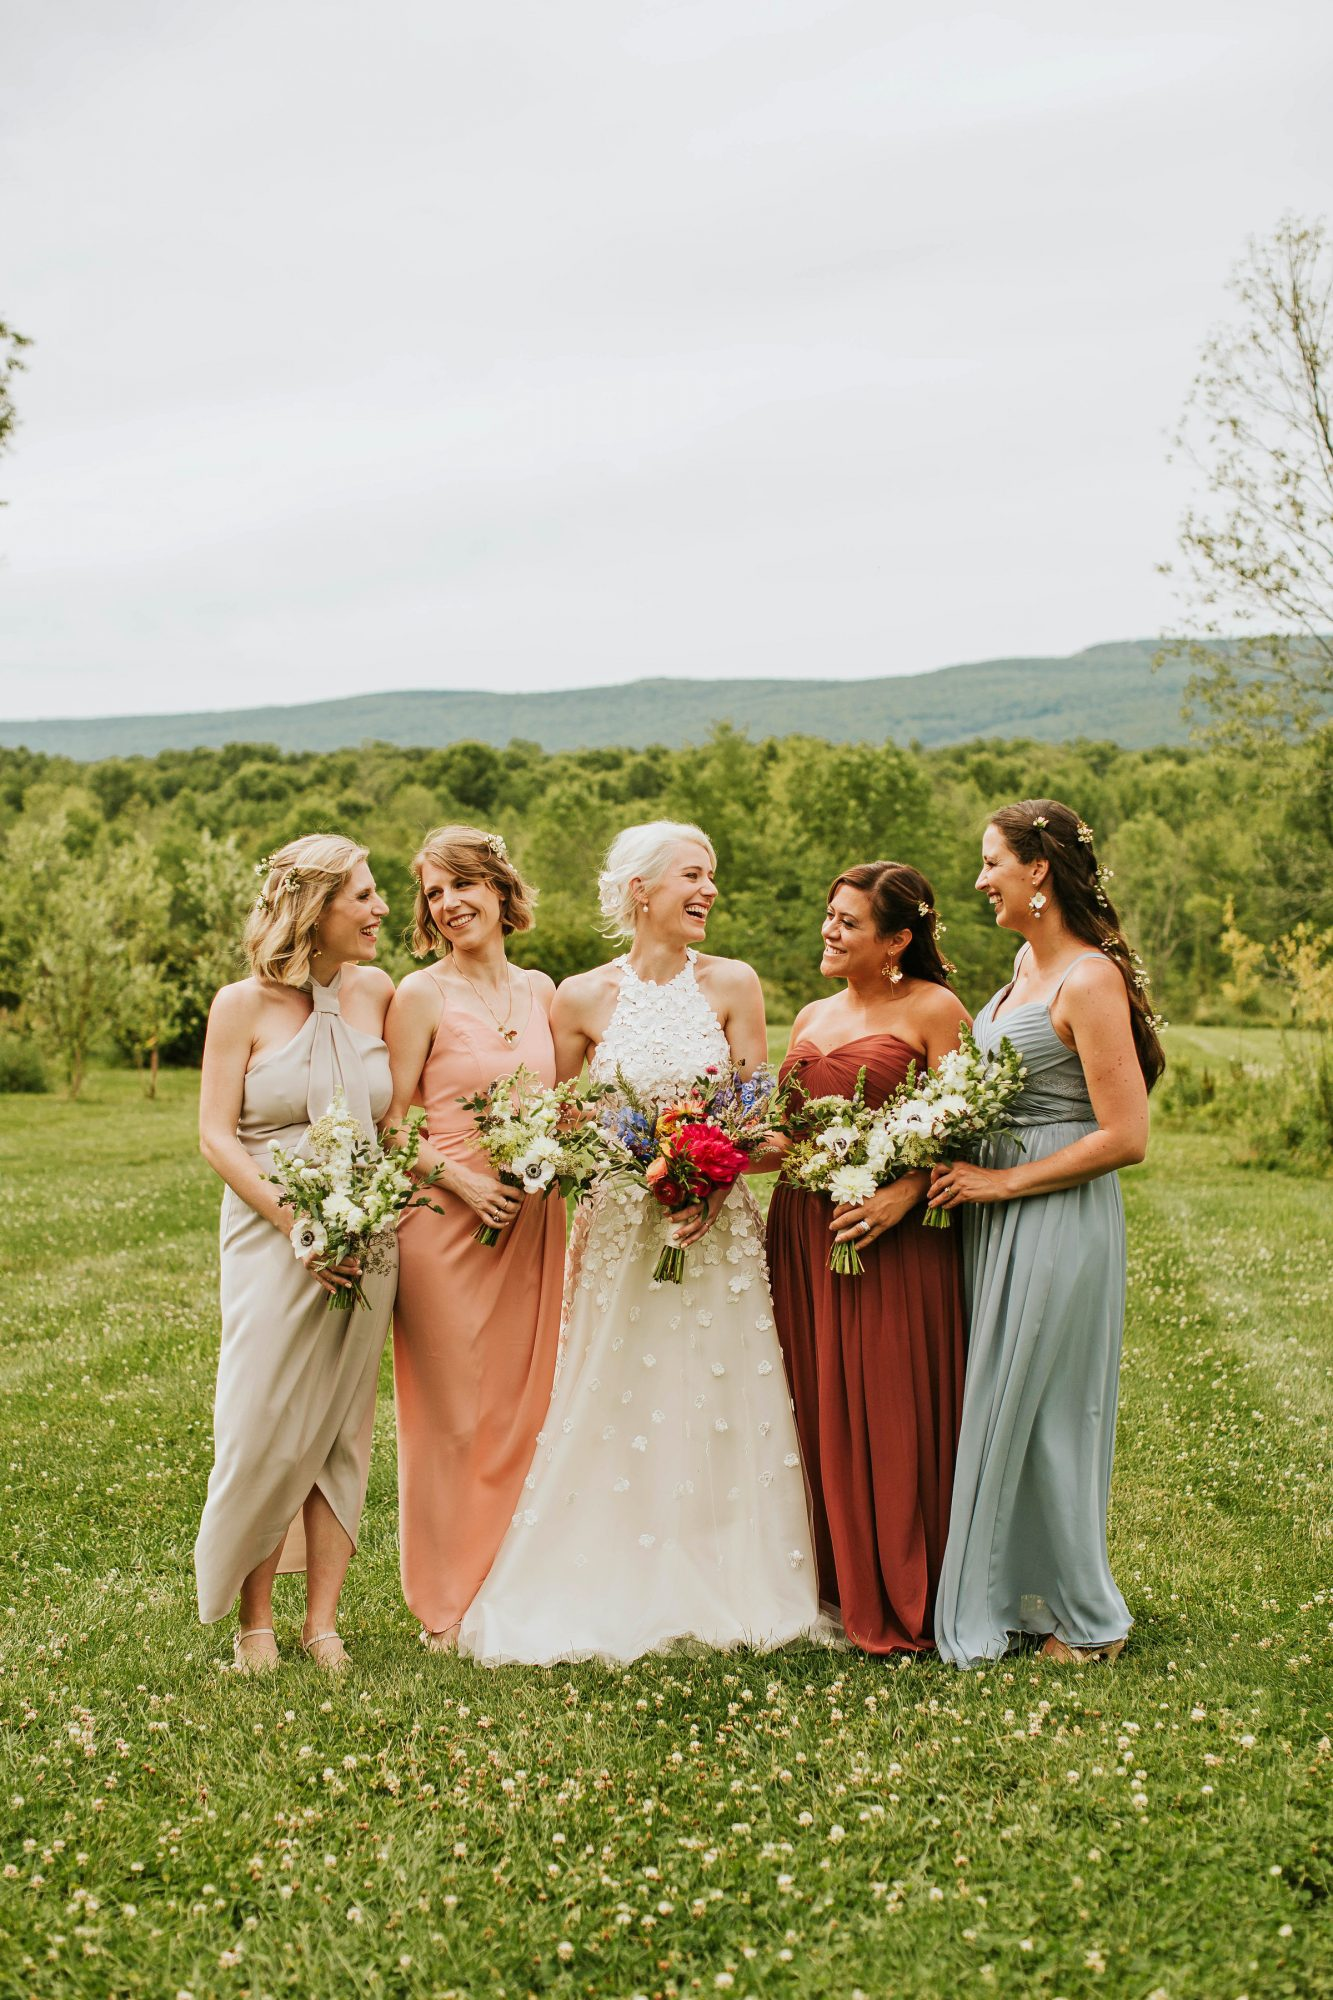 Bringing Together the Bridesmaids